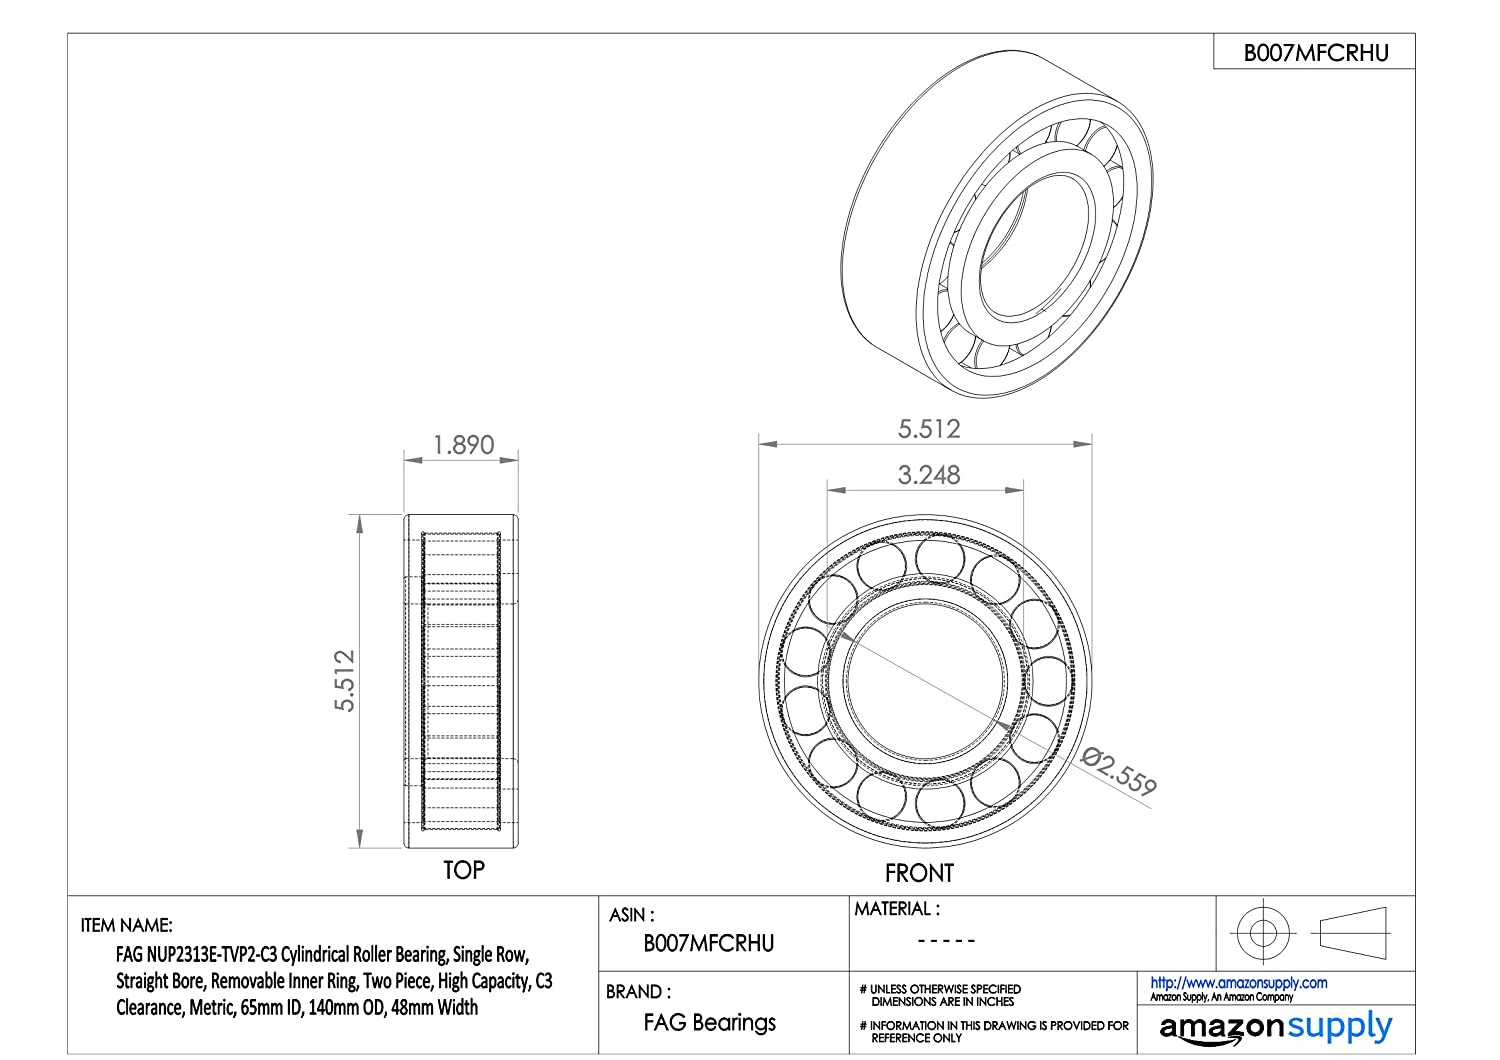 Metric NUP2314ETVP2C3 High Capacity C3 Clearance Single Row Two Piece 150mm OD Straight Bore 51mm Width Schaeffler Technologies Co 70mm ID FAG NUP2314E-TVP2-C3 Cylindrical Roller Bearing Removable Inner Ring